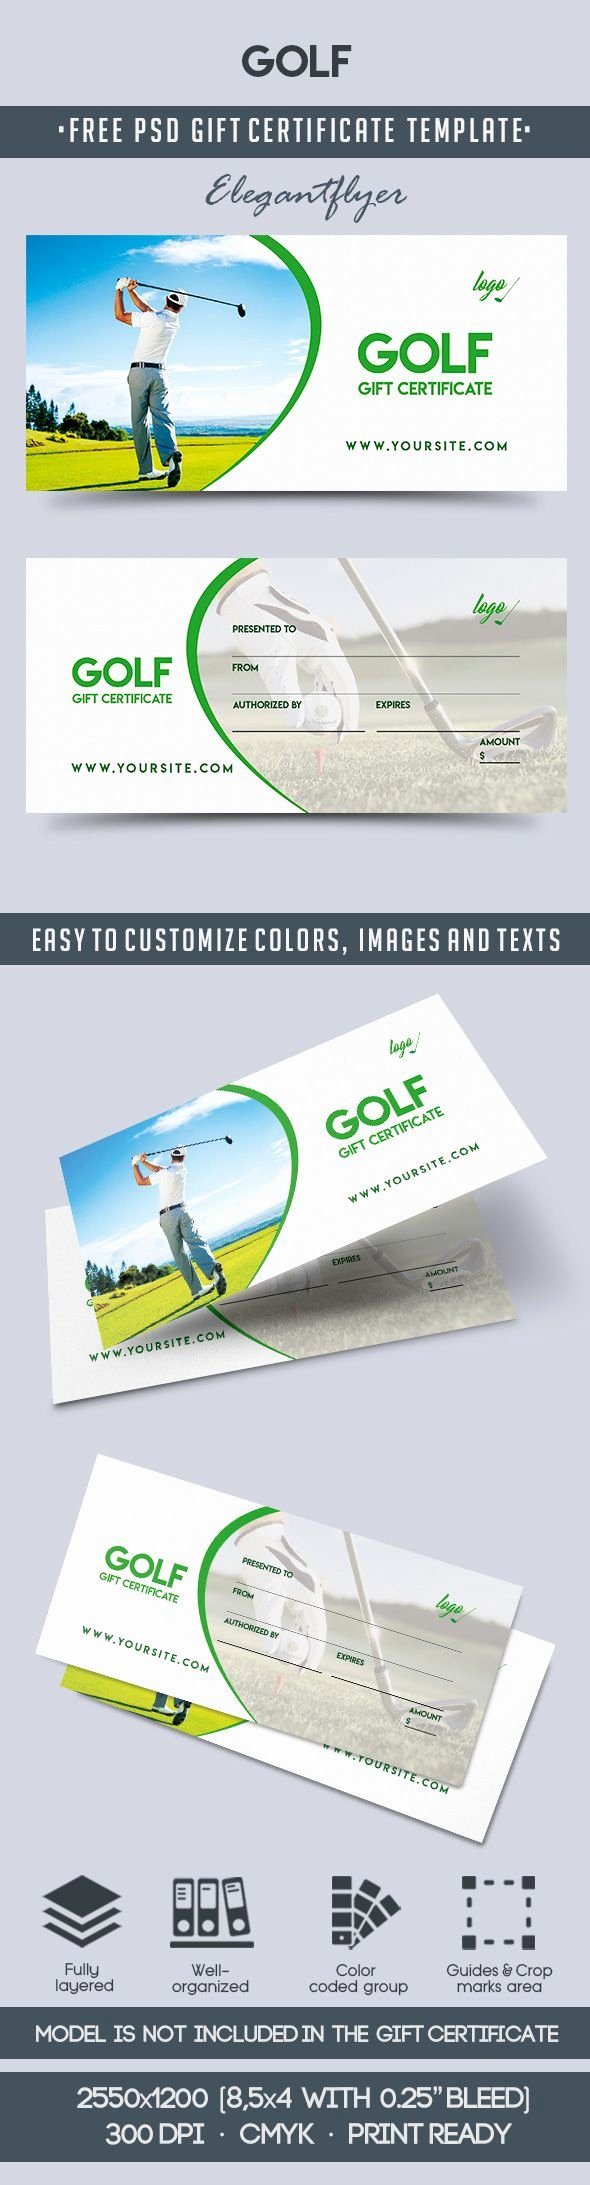 Golf Gift Certificate Template Best Of Golf Club Gift Vouchers – by Elegantflyer